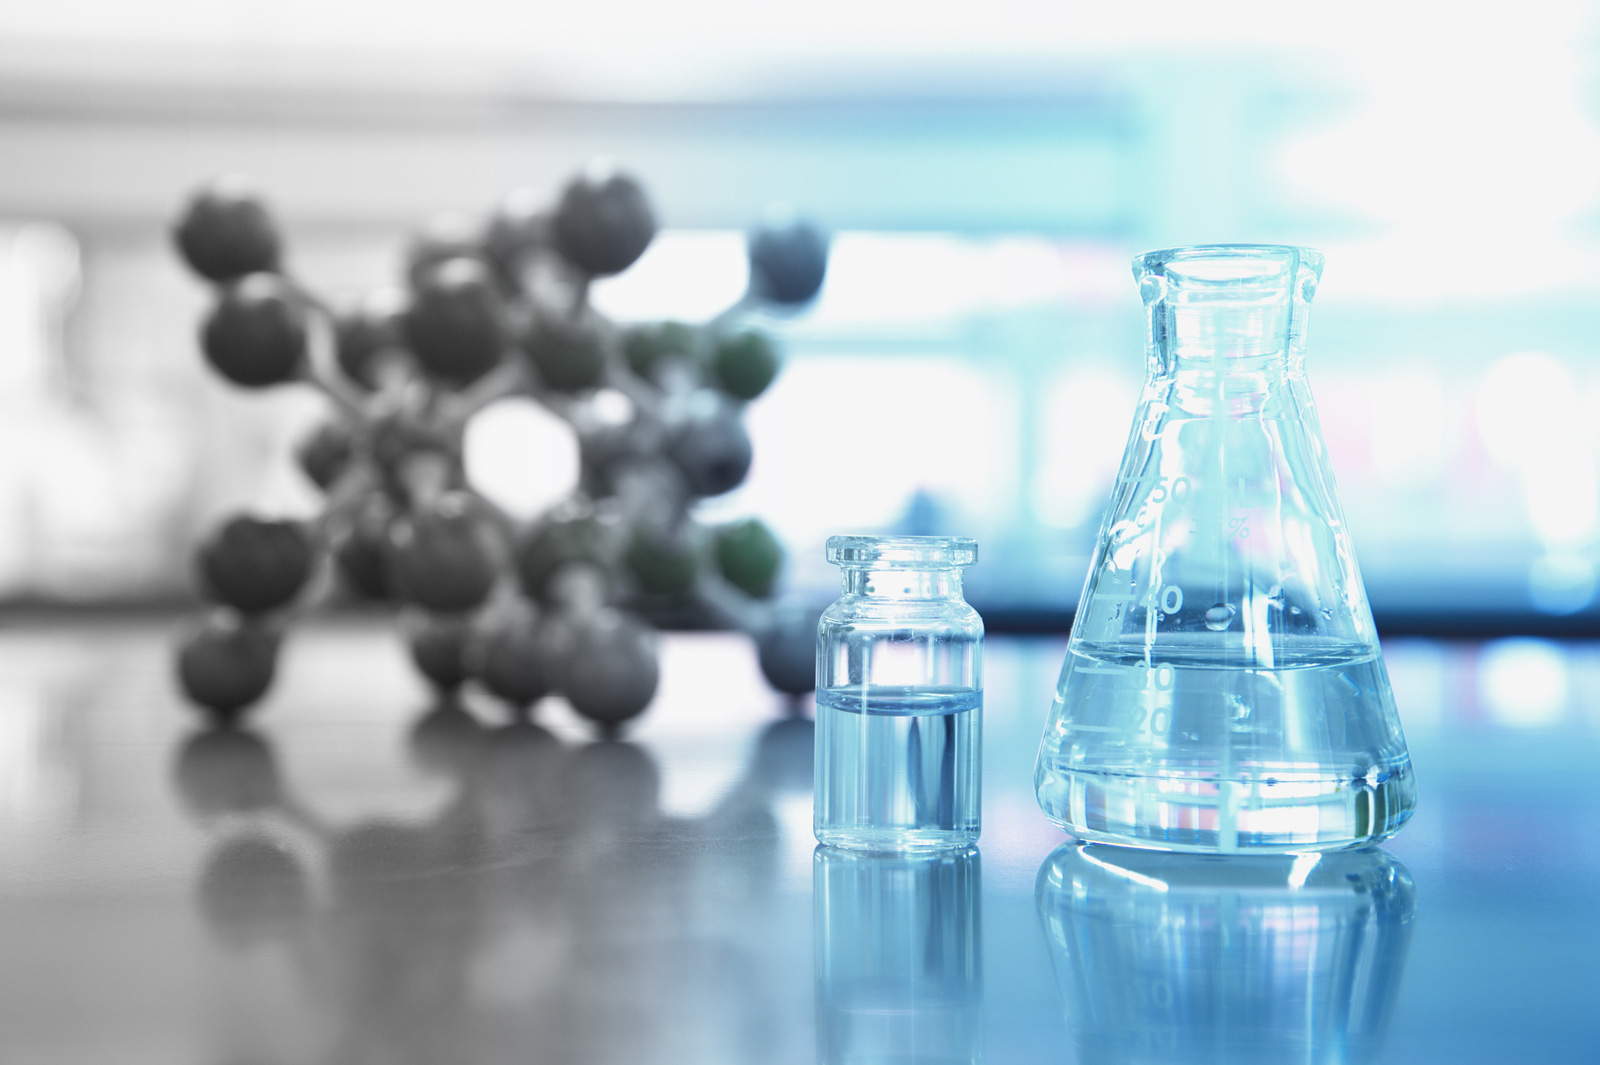 Biopolymers  Market Insights, Trends & Growth Outlook